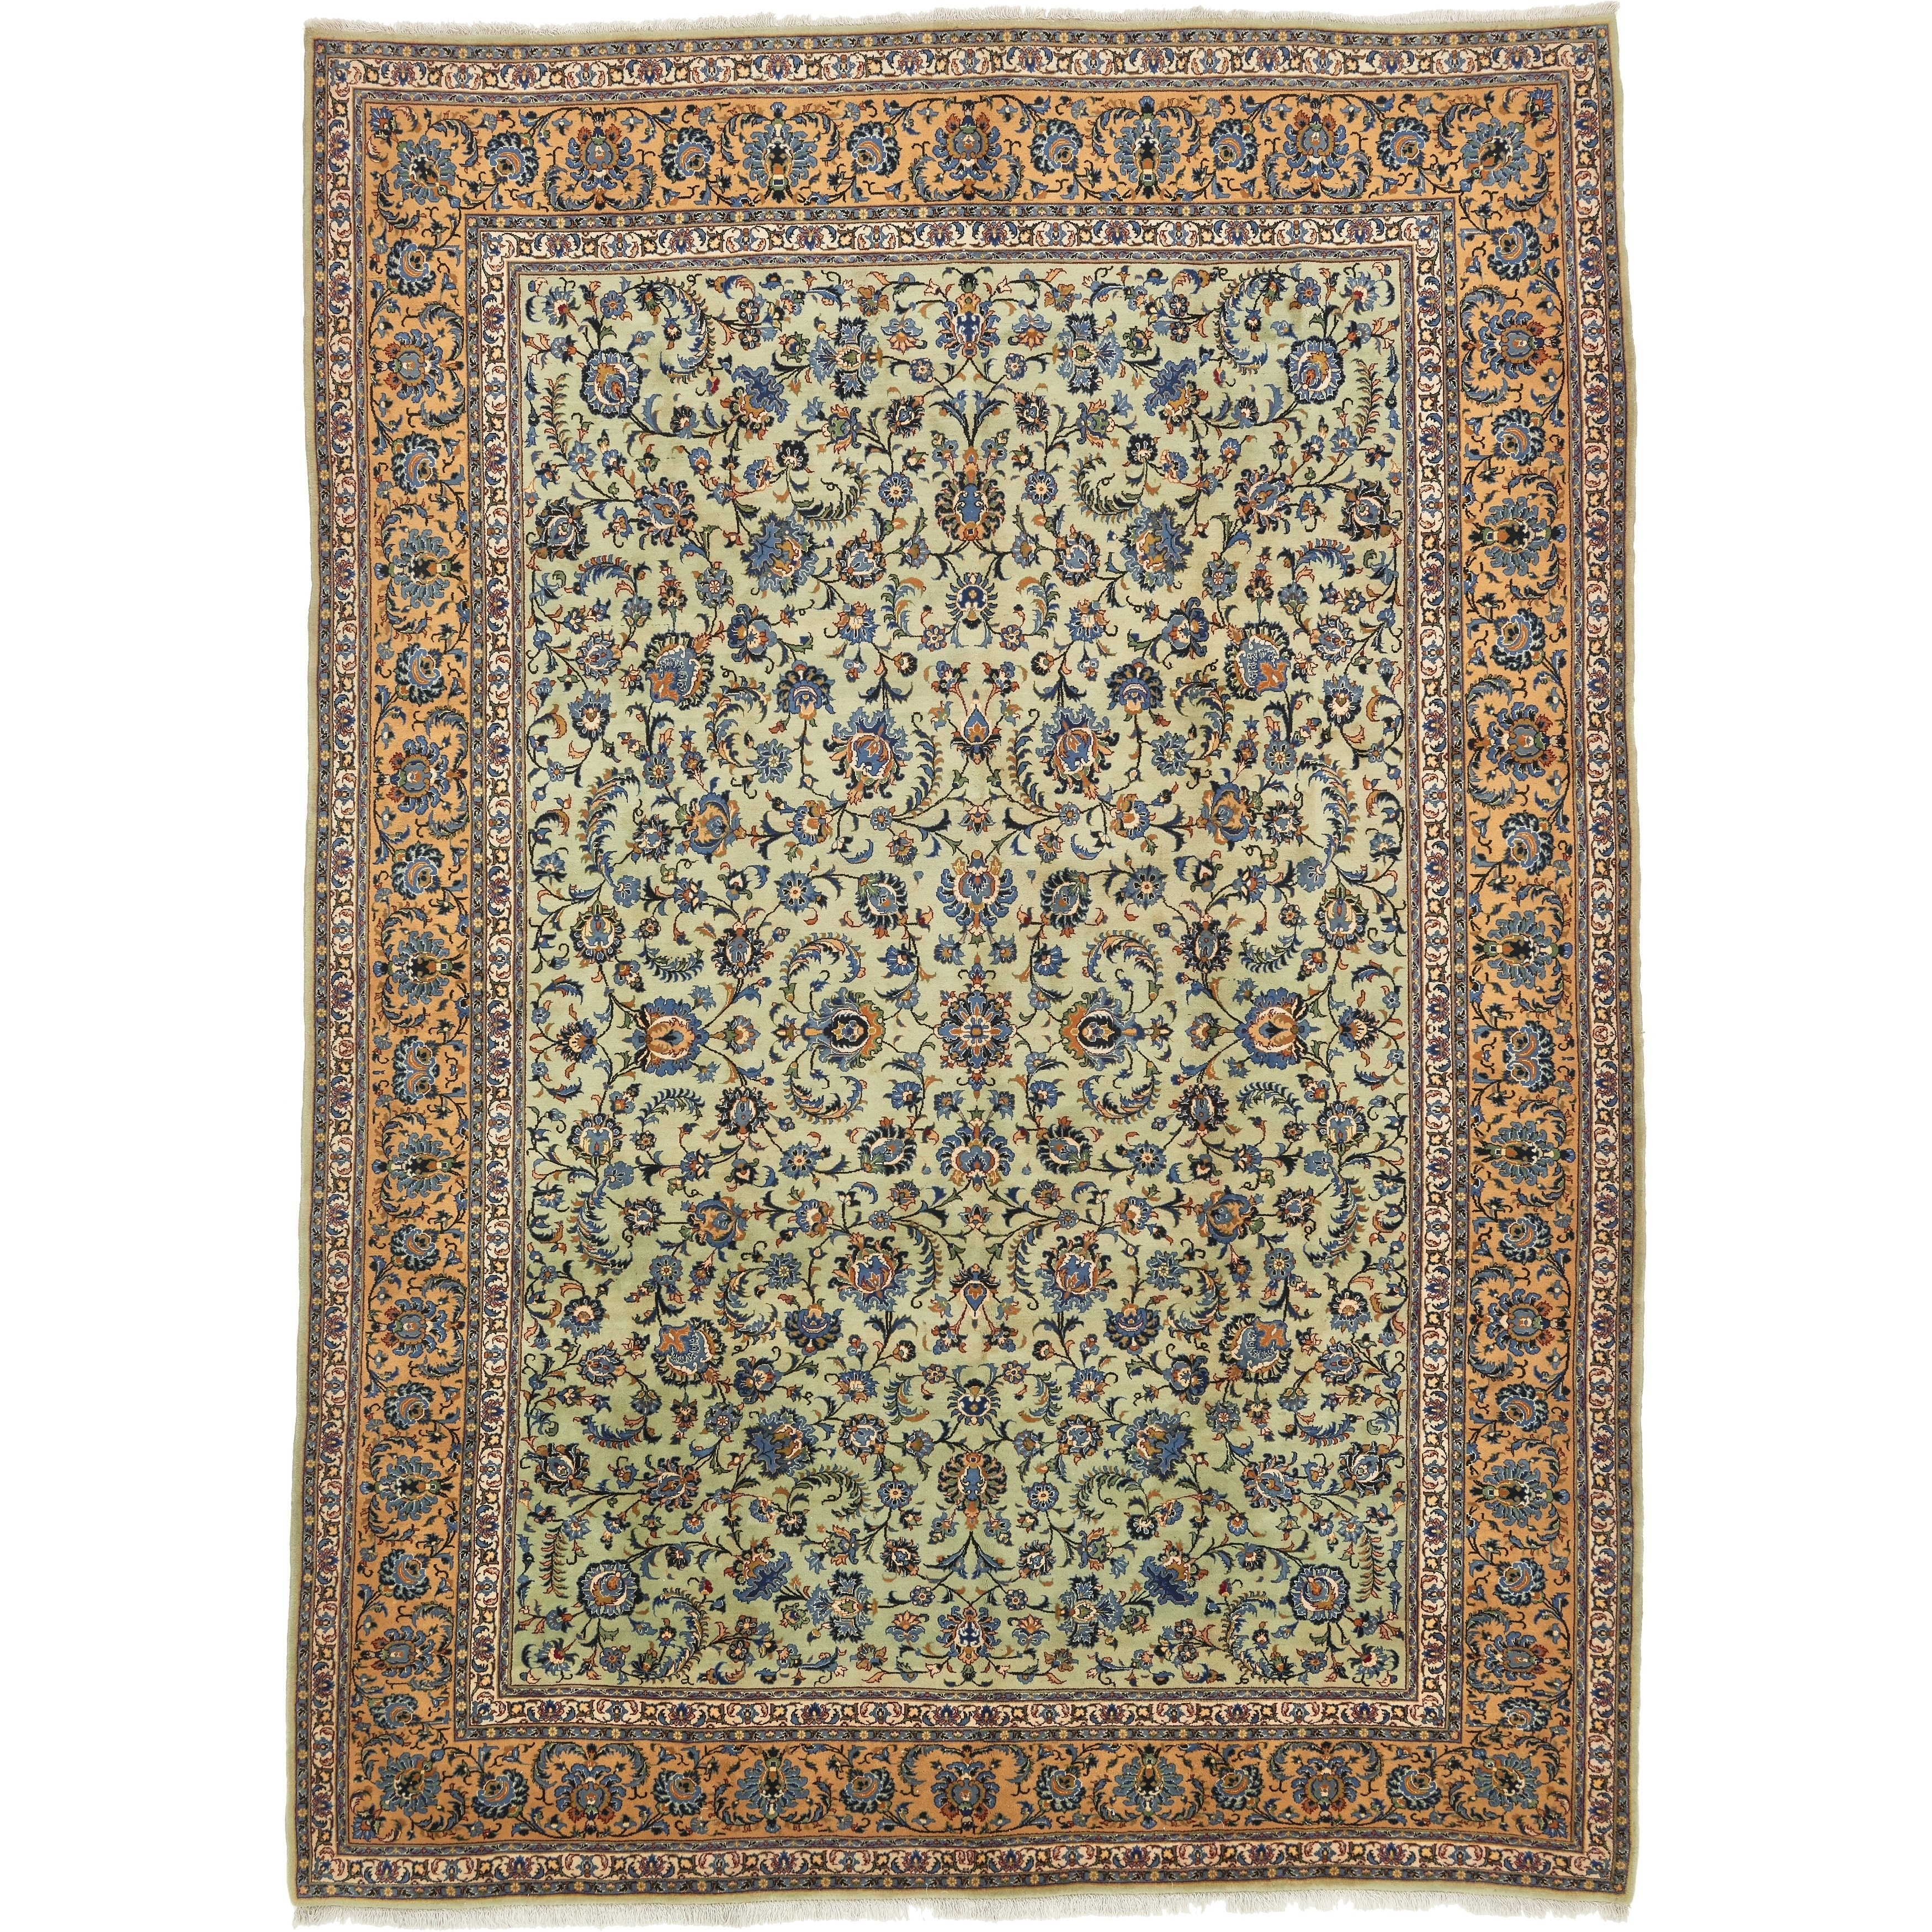 Hand Knotted Kashan Semi Antique Wool Area Rug - 9 10 x 13 9 (LIGHT GREEN - 9 10 x 13 9)